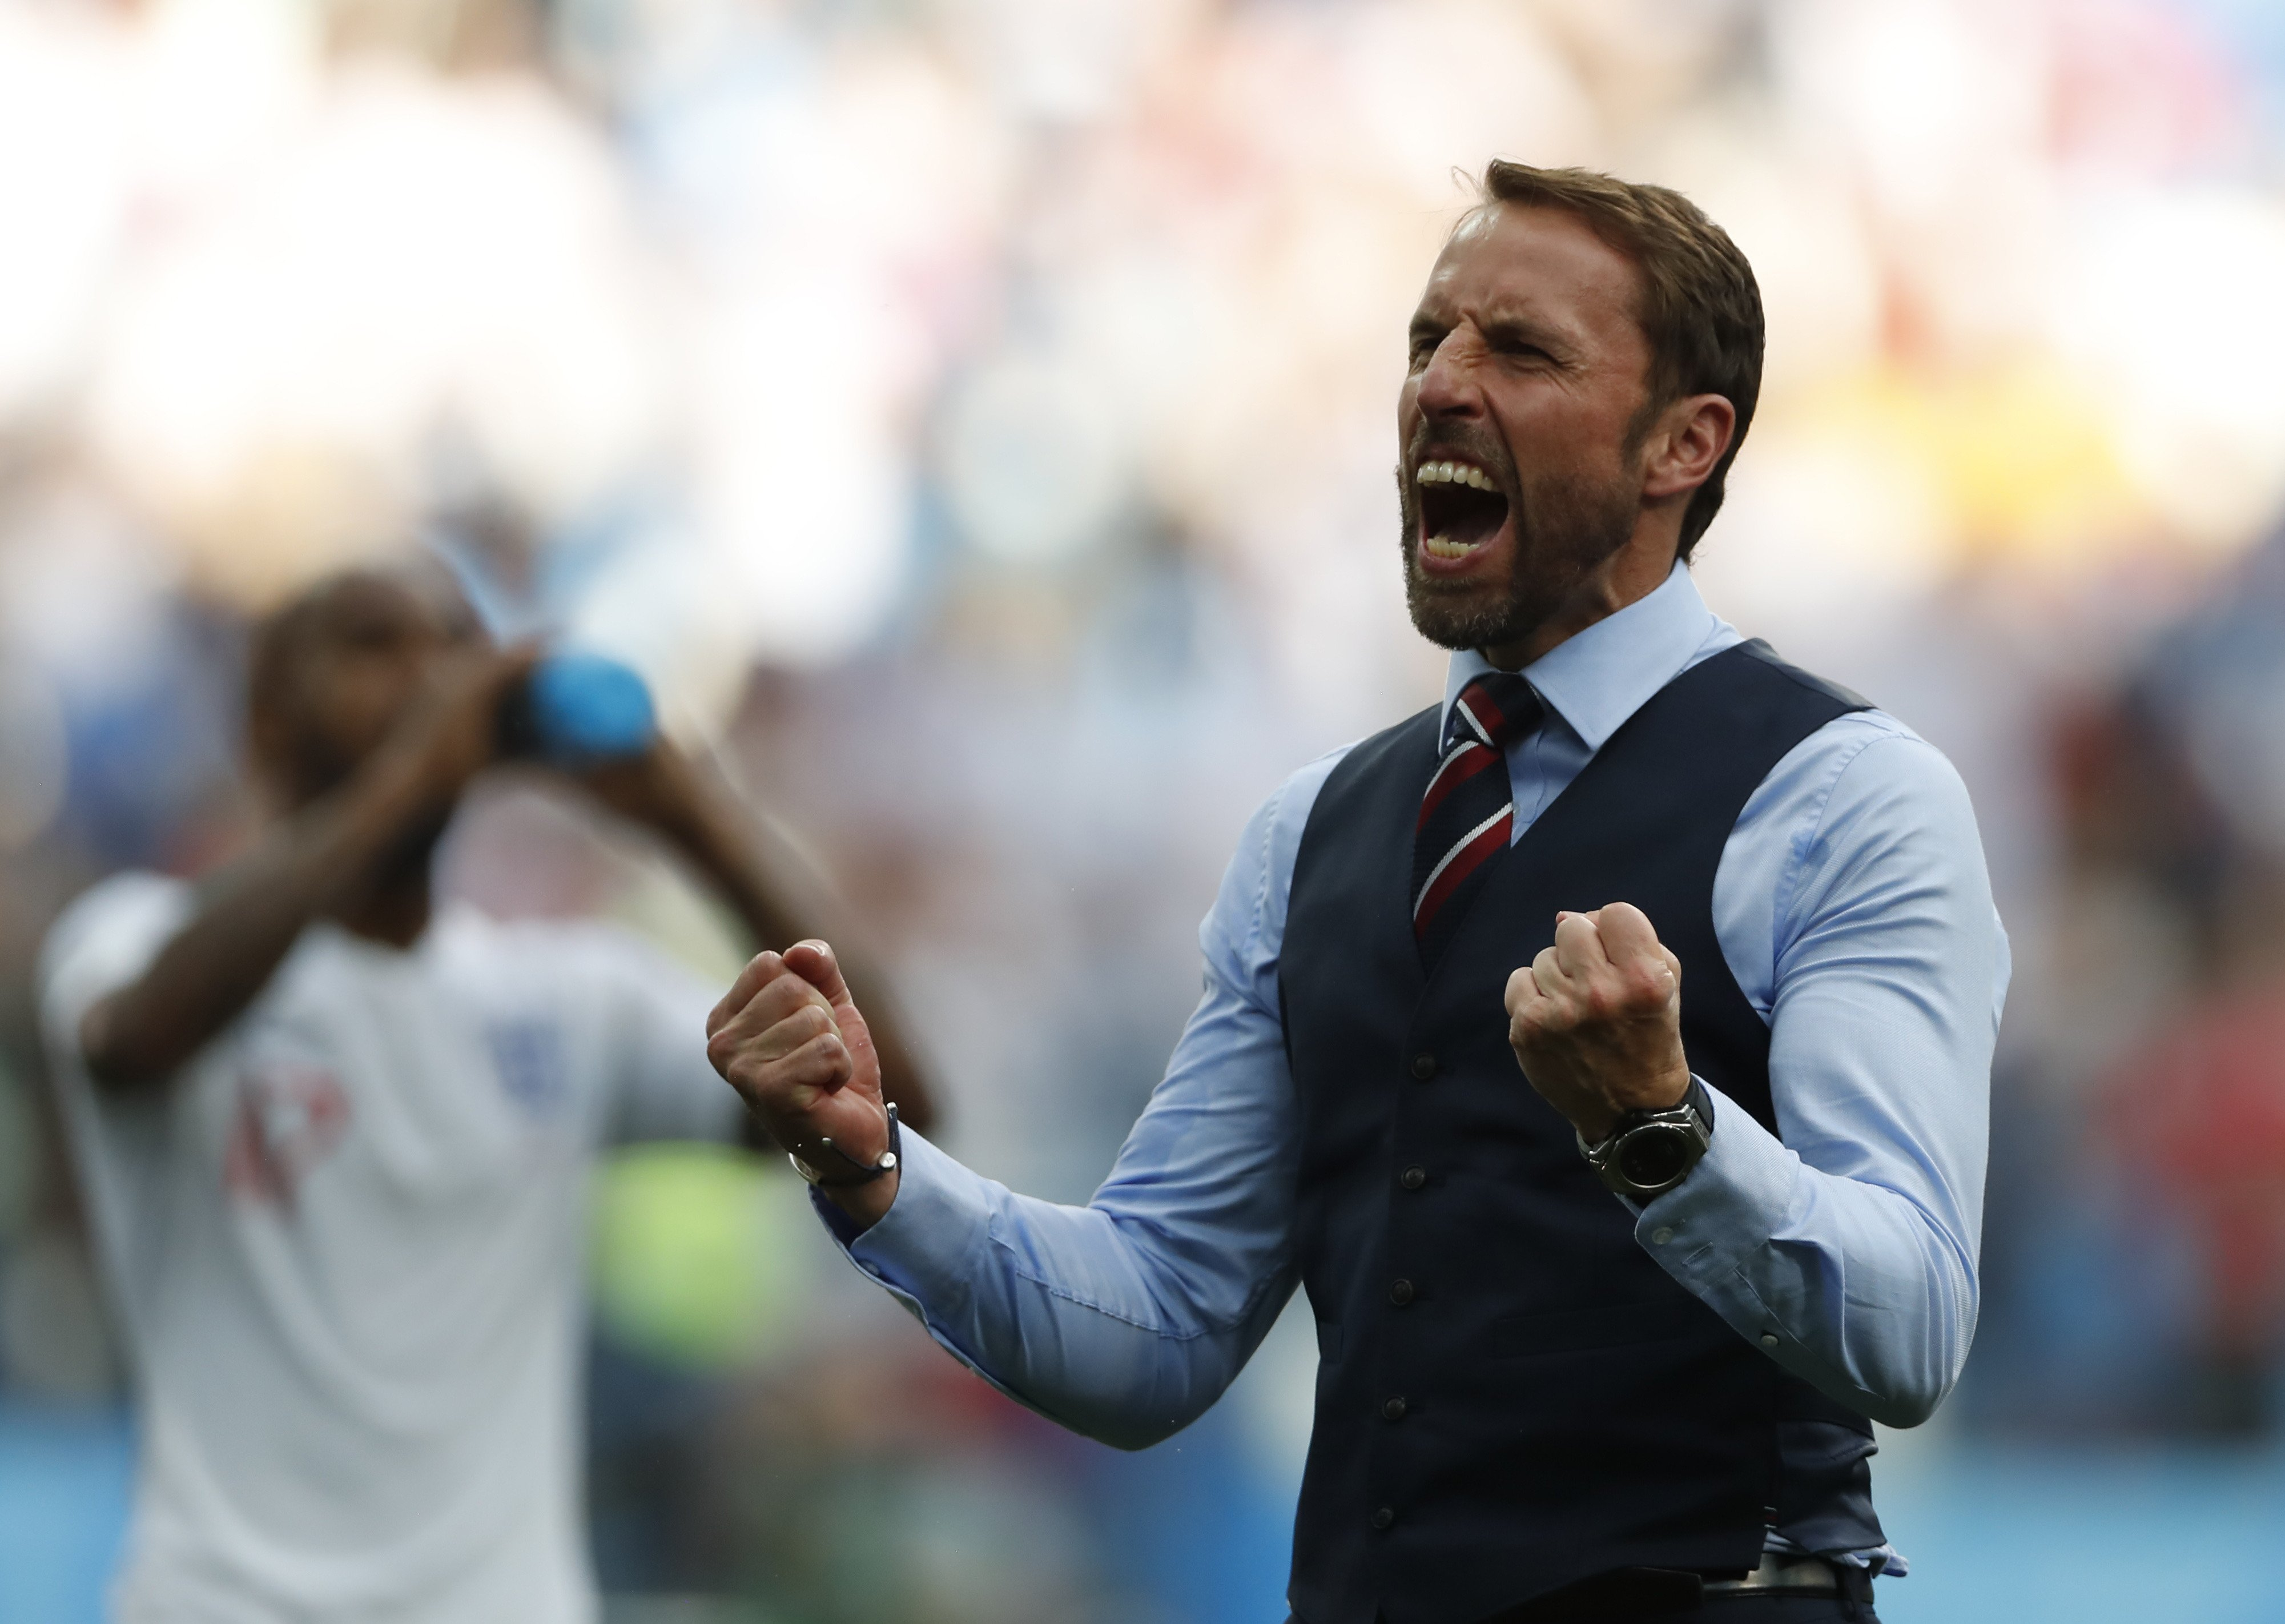 England football team coach Gareth Southgate at FIFA World Cup.